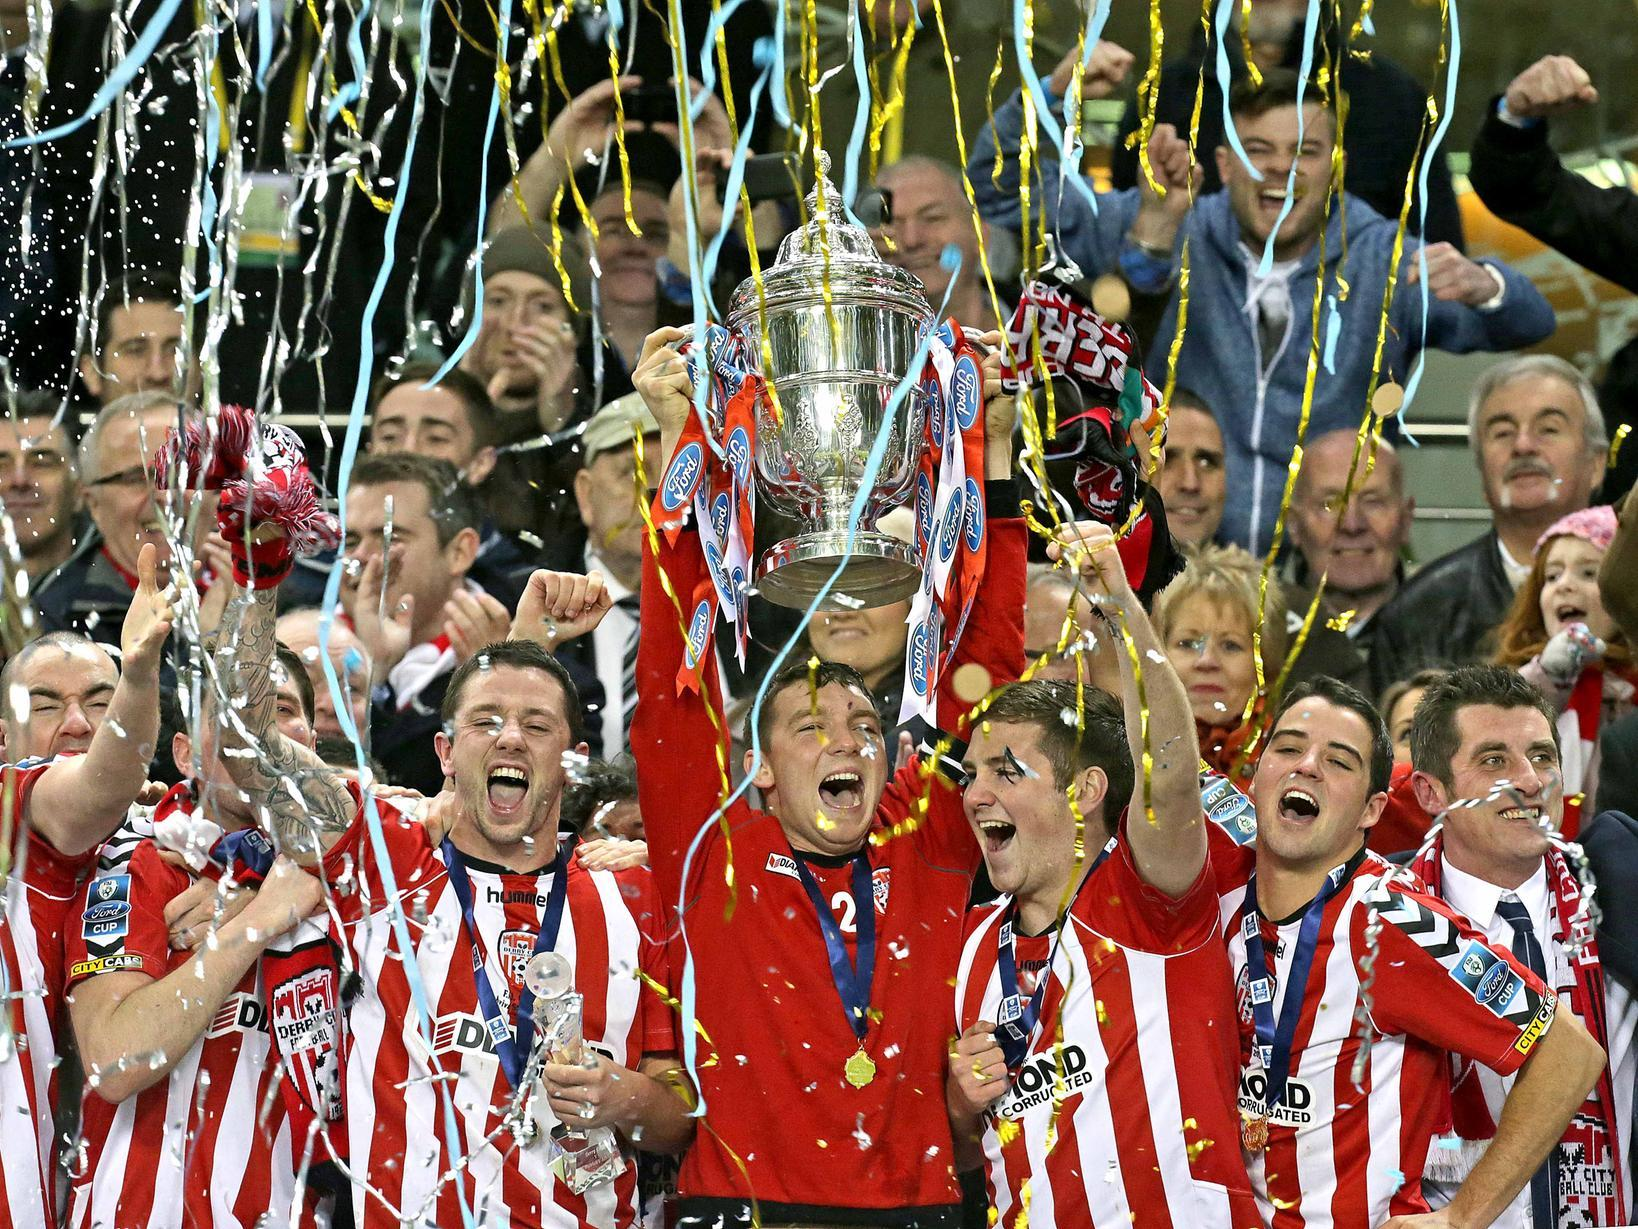 Derry City await release of League of Ireland fixture list and FAI Cup opponents